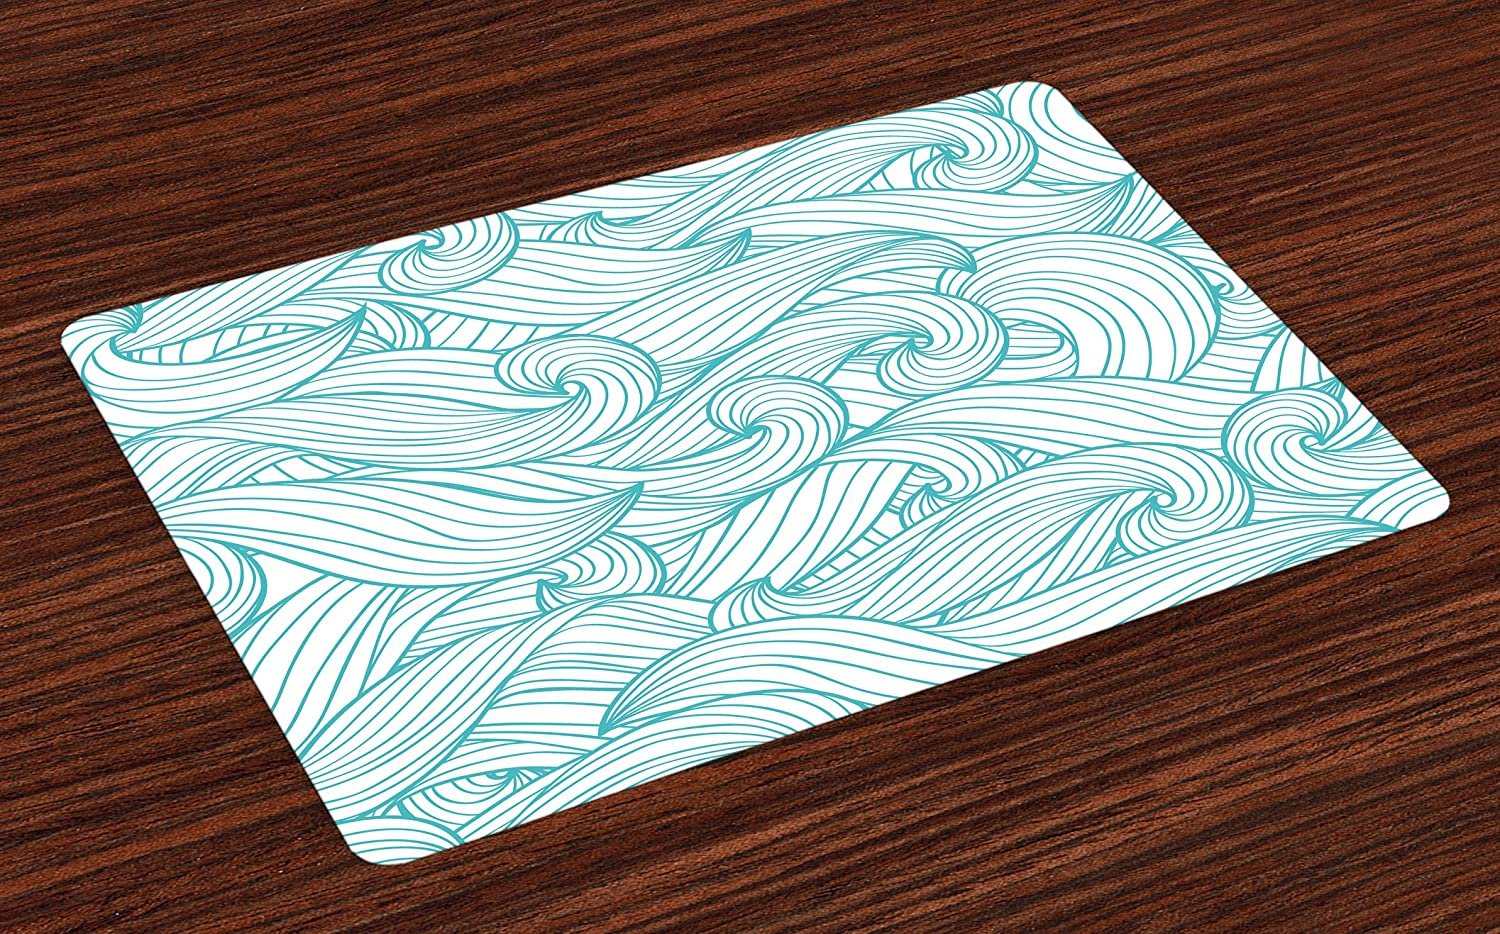 Lunarable Turquoise Place Mats Set of 4, Abstract Pattern with Waves and Cloud Fashion Modern Style Work of Art, Washable Fabric Placemats for Dining Table, Standard Size, Green White